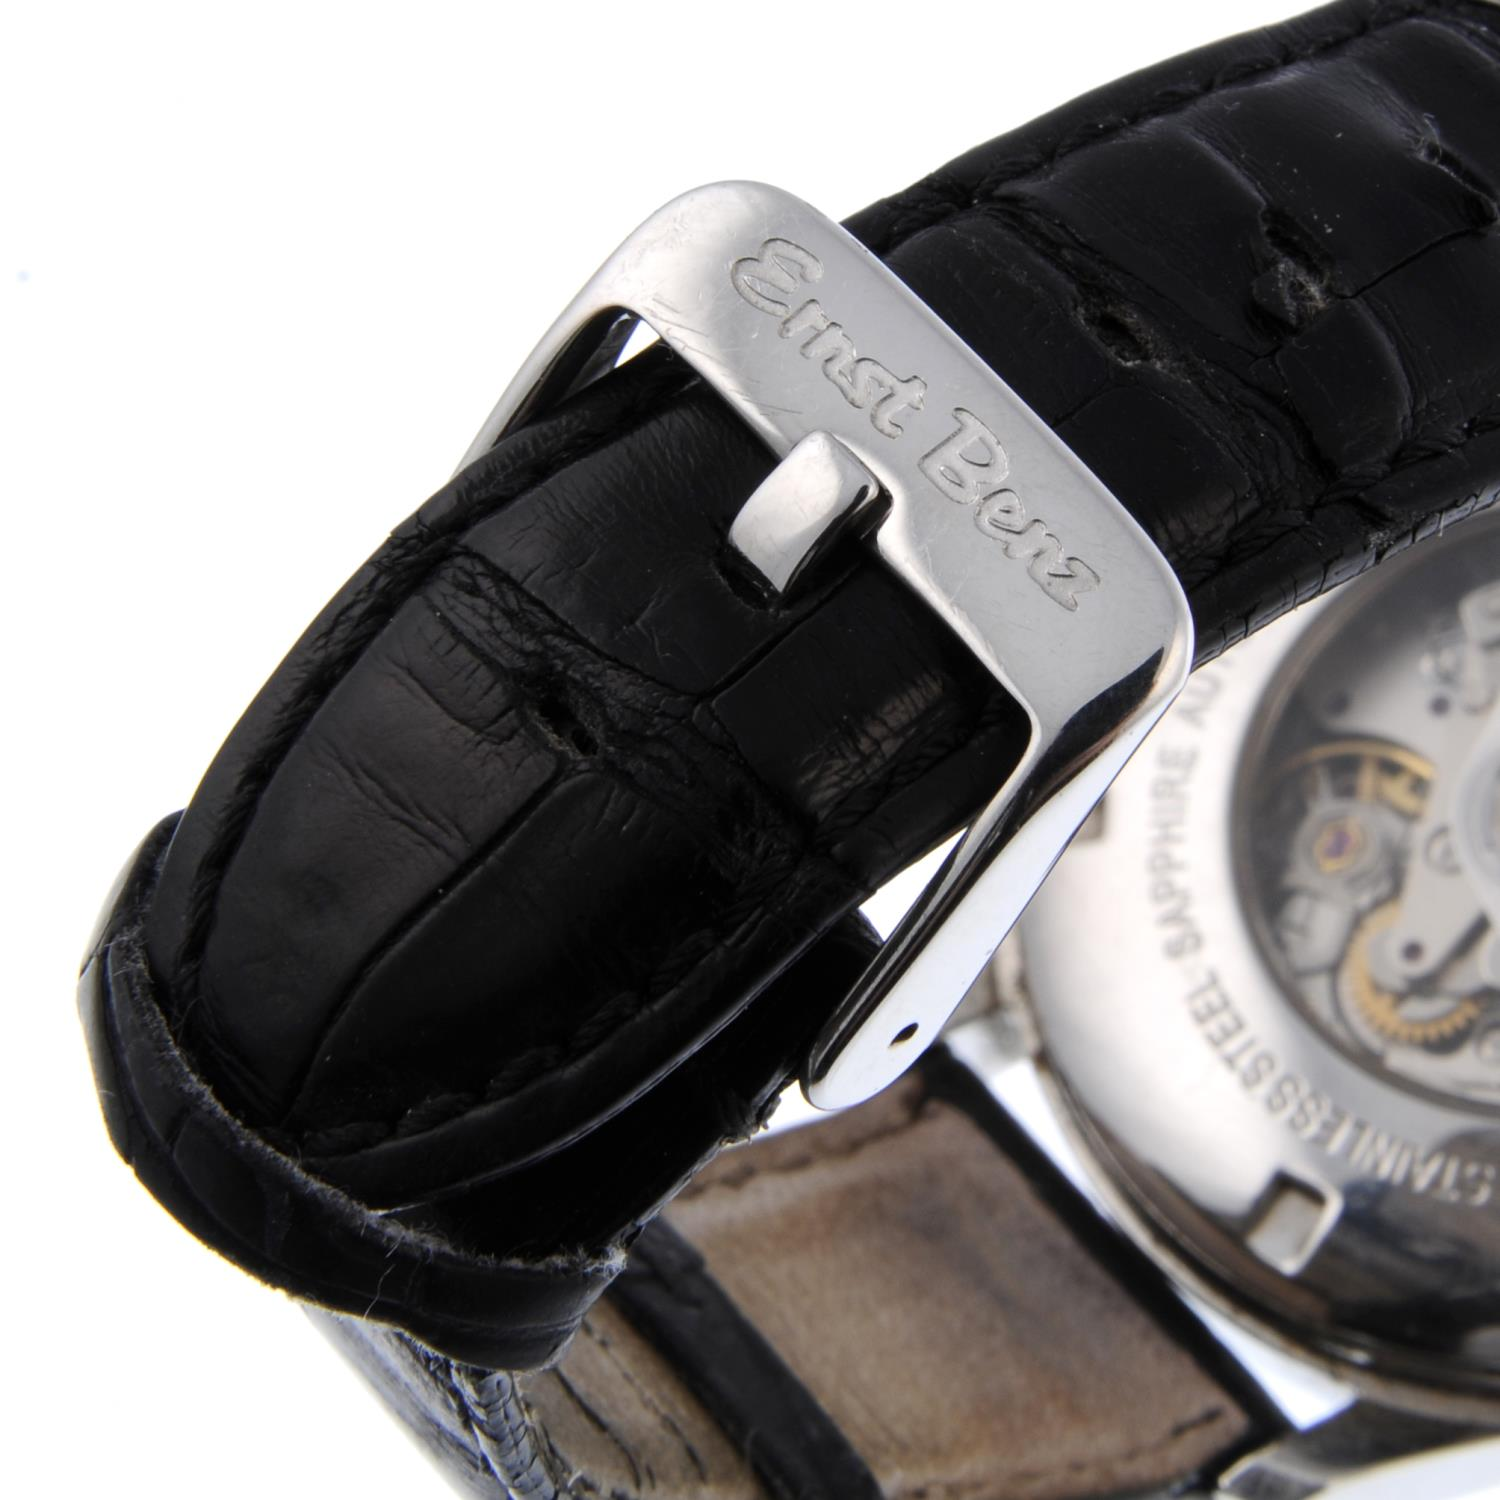 ERNST BENZ - a Chronolunar chronograph wrist watch.Stainless steel case with exhibition caseback. - Image 2 of 4